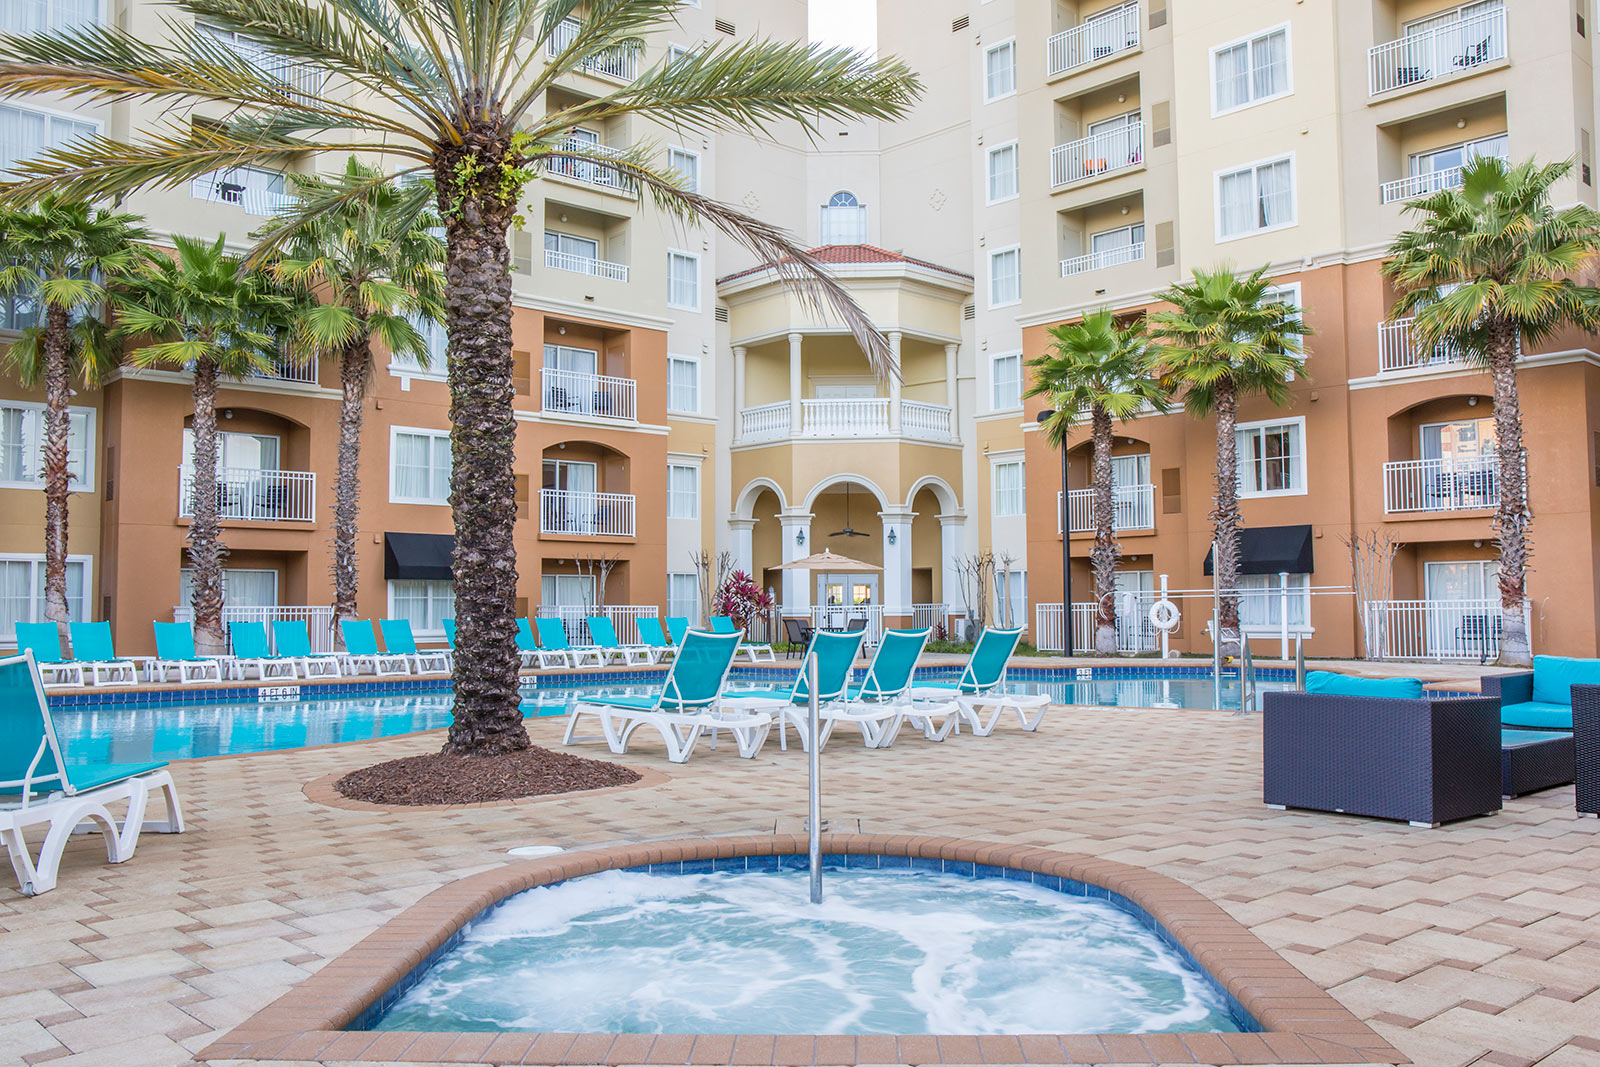 Pool and hot tub at The Point Orlando